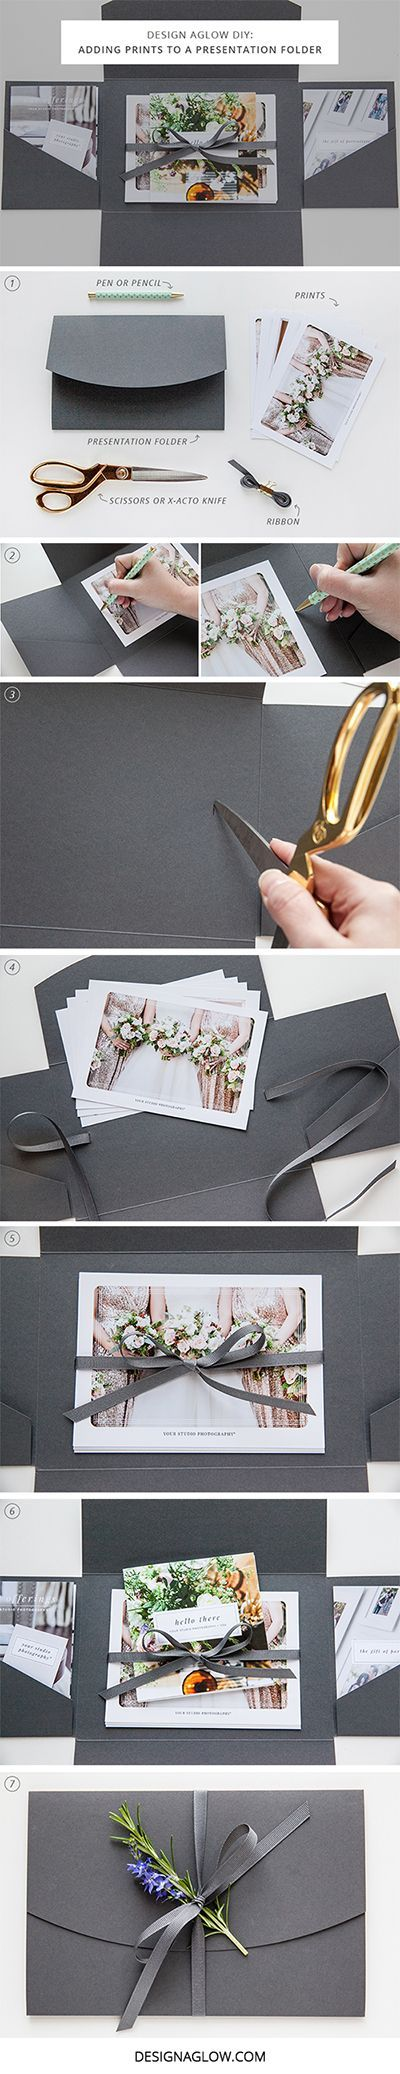 Get craft and wow your photography clients! We'll show you how to impress your clients by adding prints to a simple folder for a picture-perfect presentation.